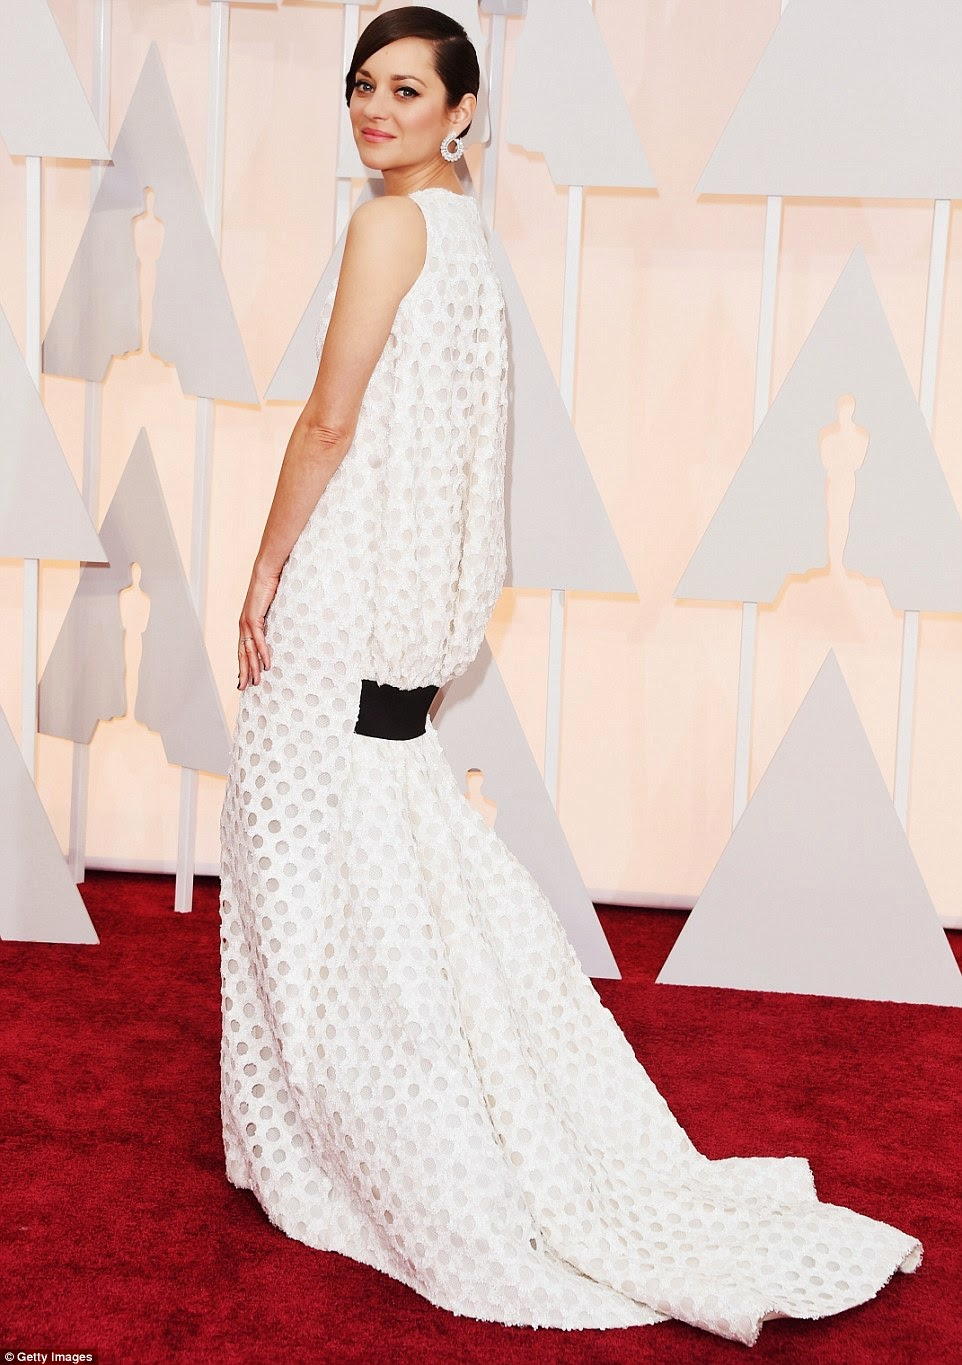 Marion Cotillard in Dior Couture at Oscars 2015